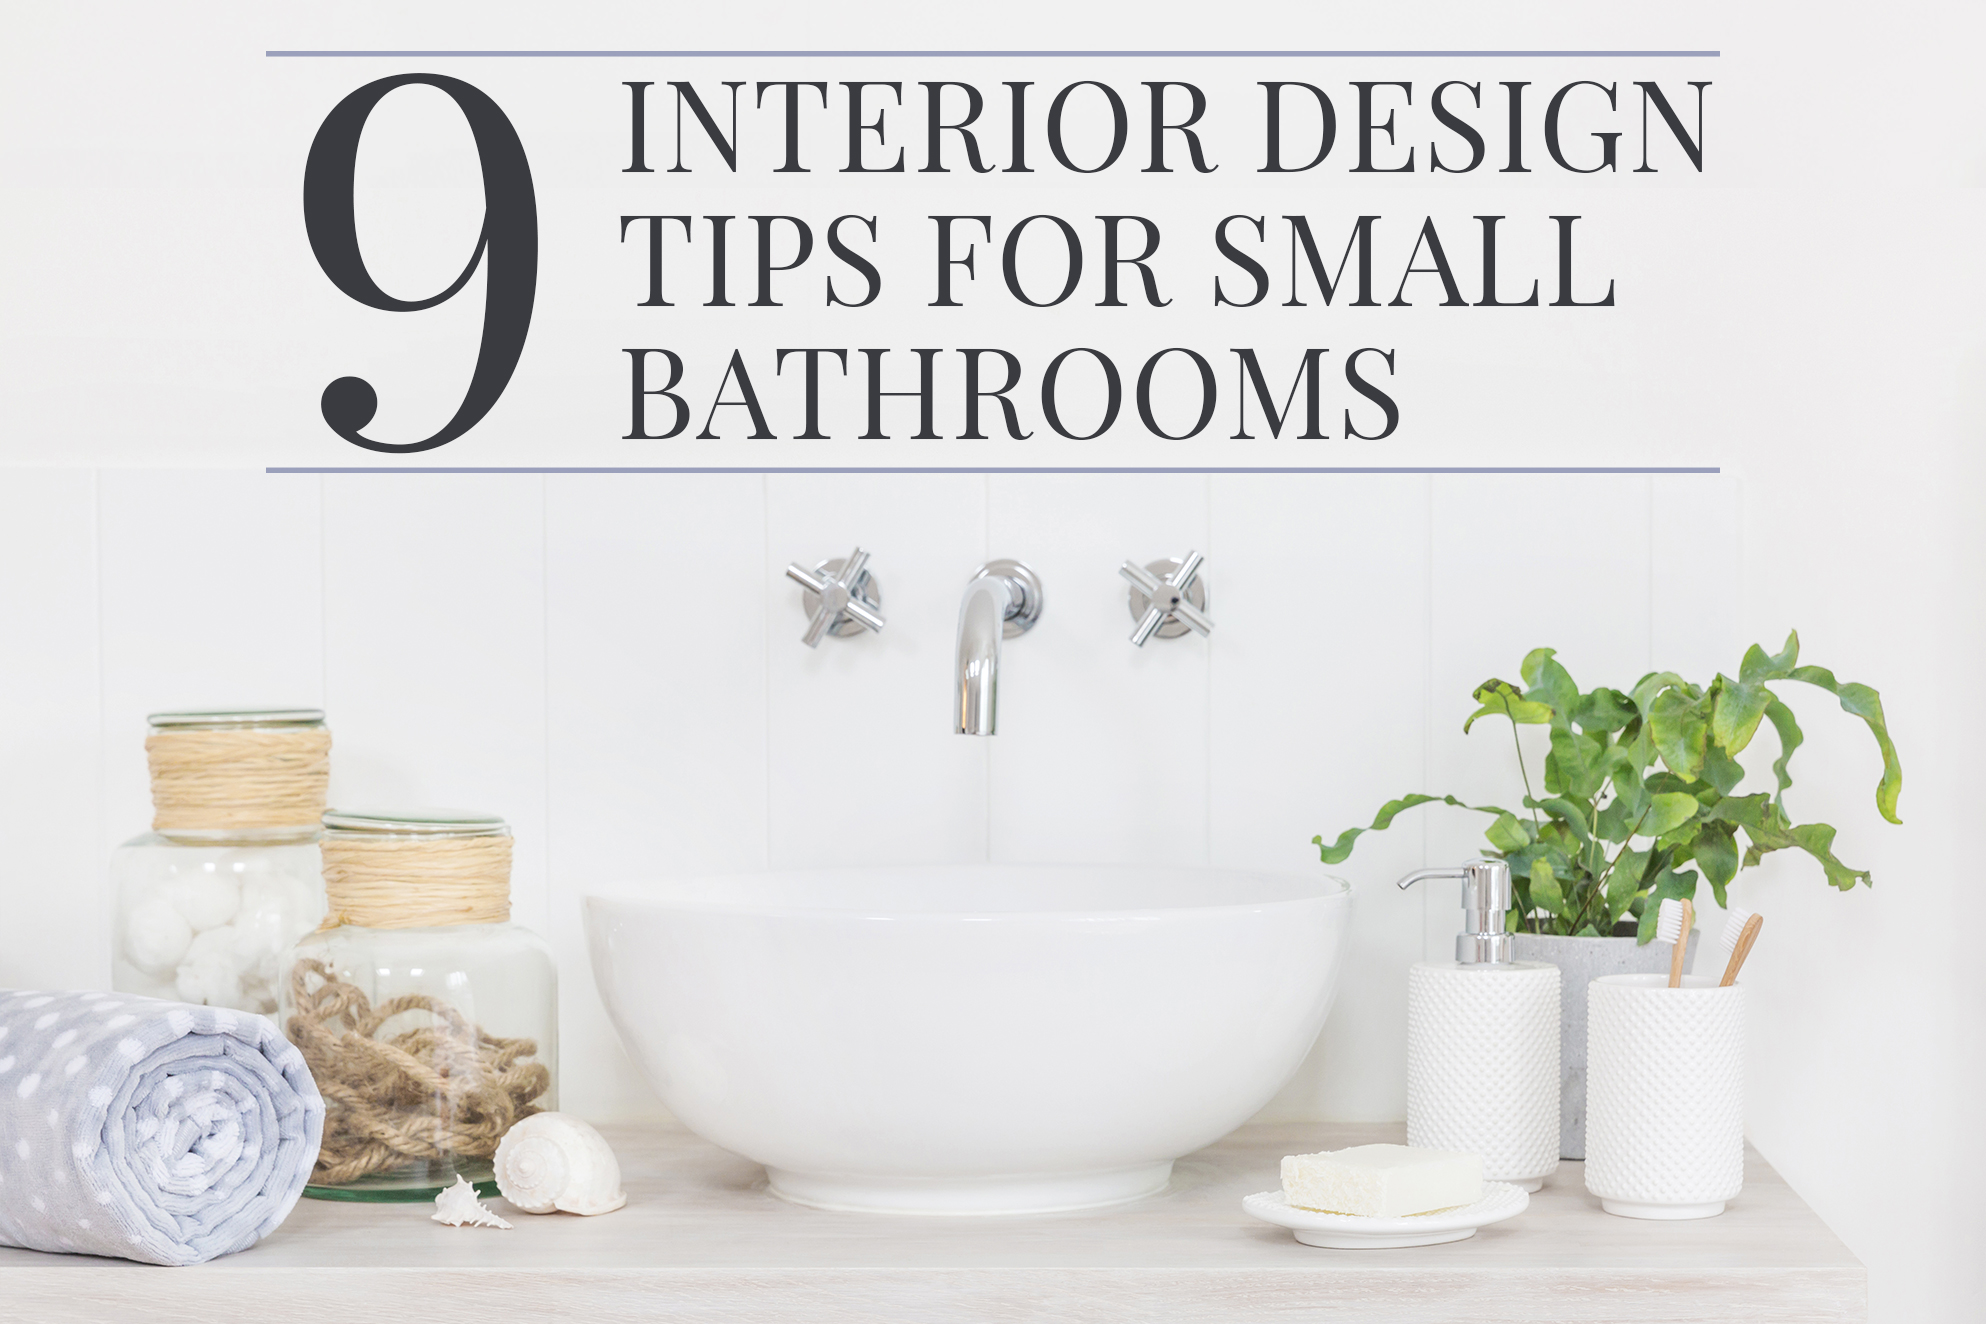 9 Interior Design Tips to Make Your Small Bathroom Seem Bigger